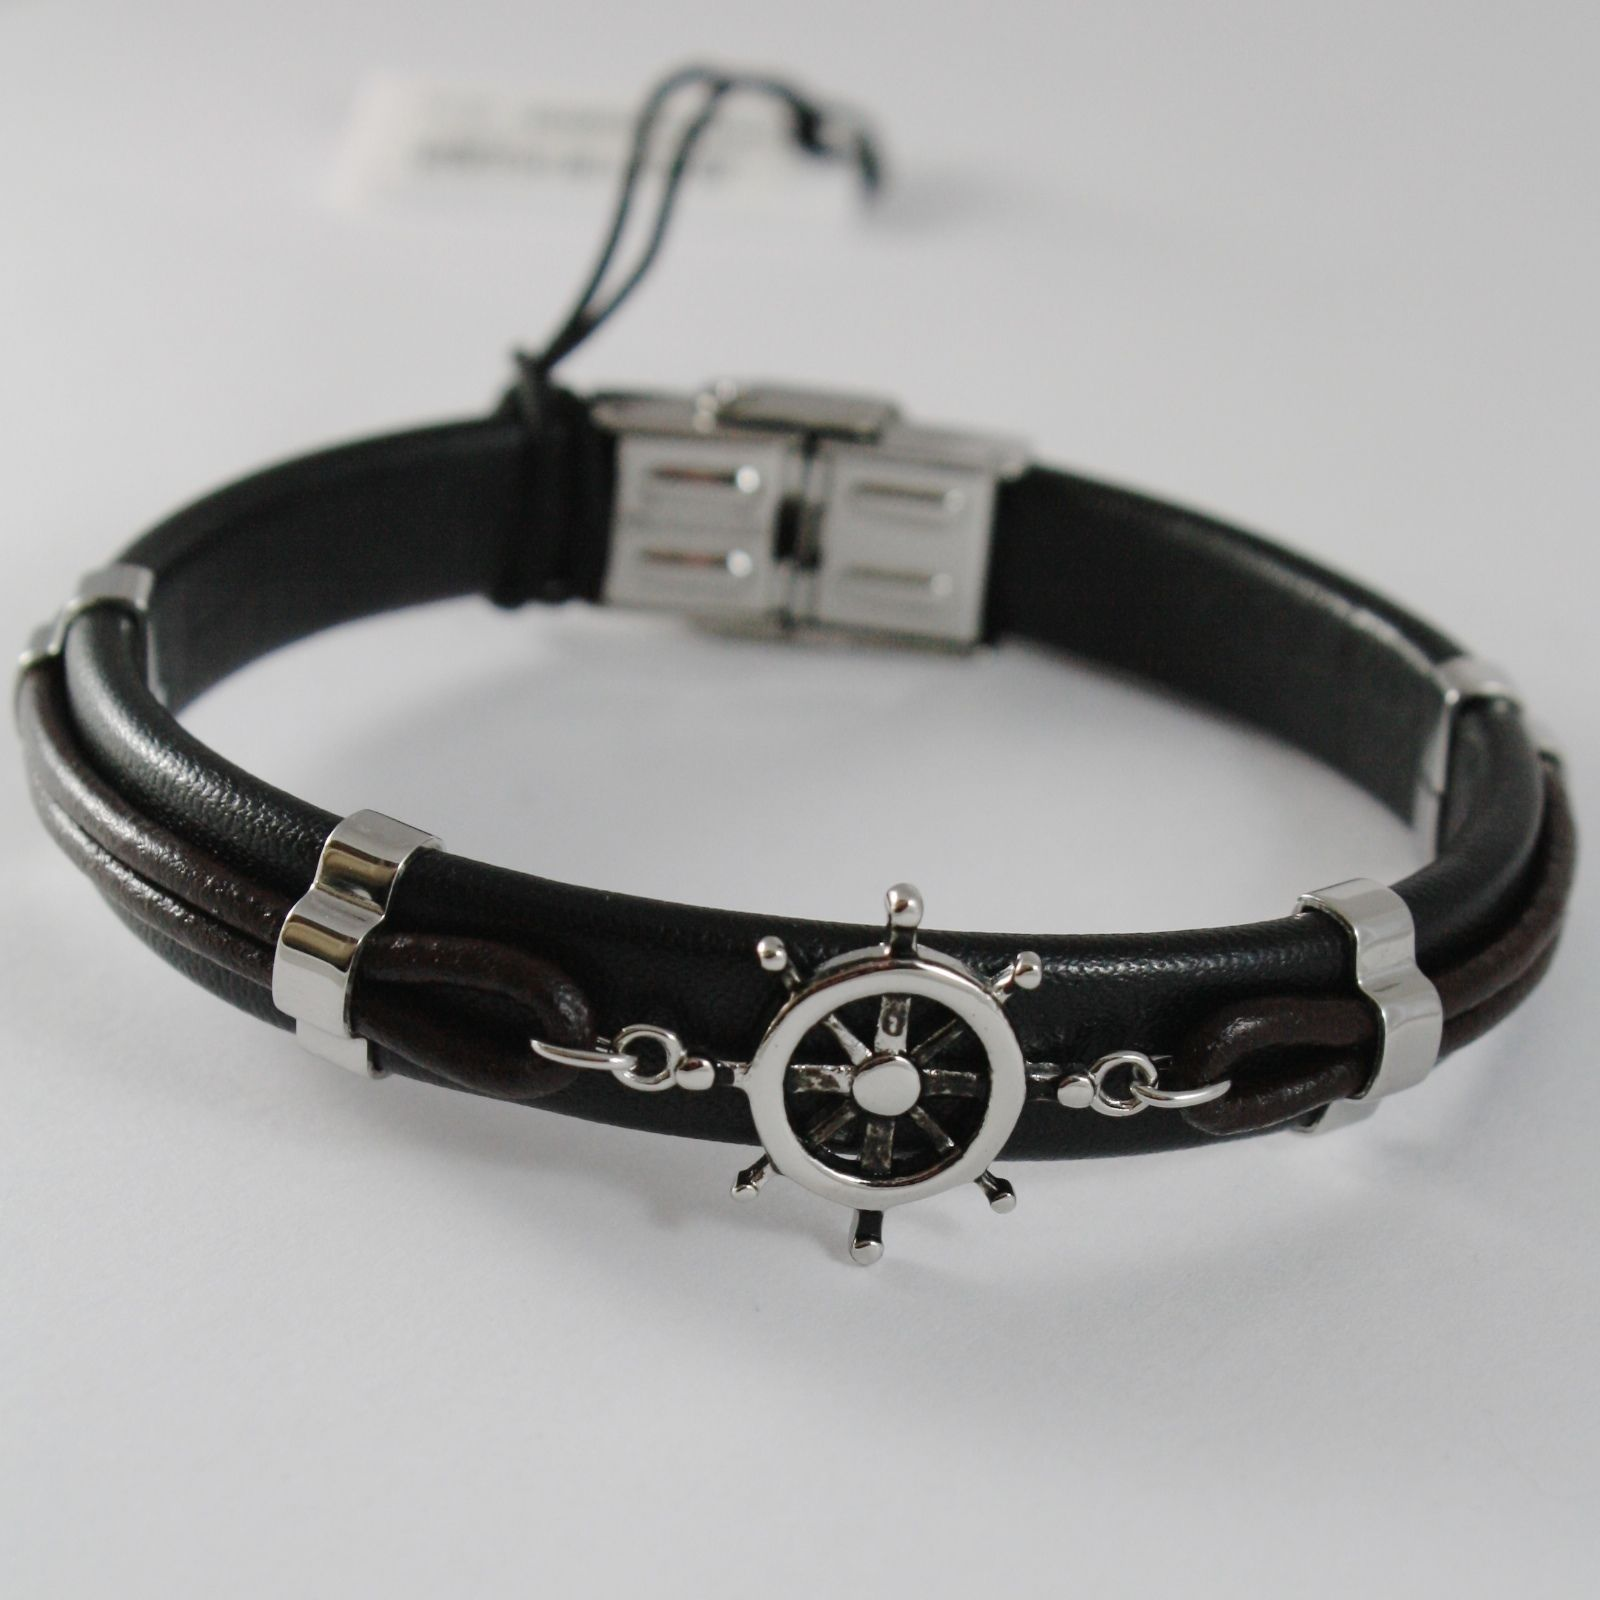 STAINLESS STEEL BOAT RUDDER HELM BRACELET WITH LEATHER, 4US BY CESARE PACIOTTI